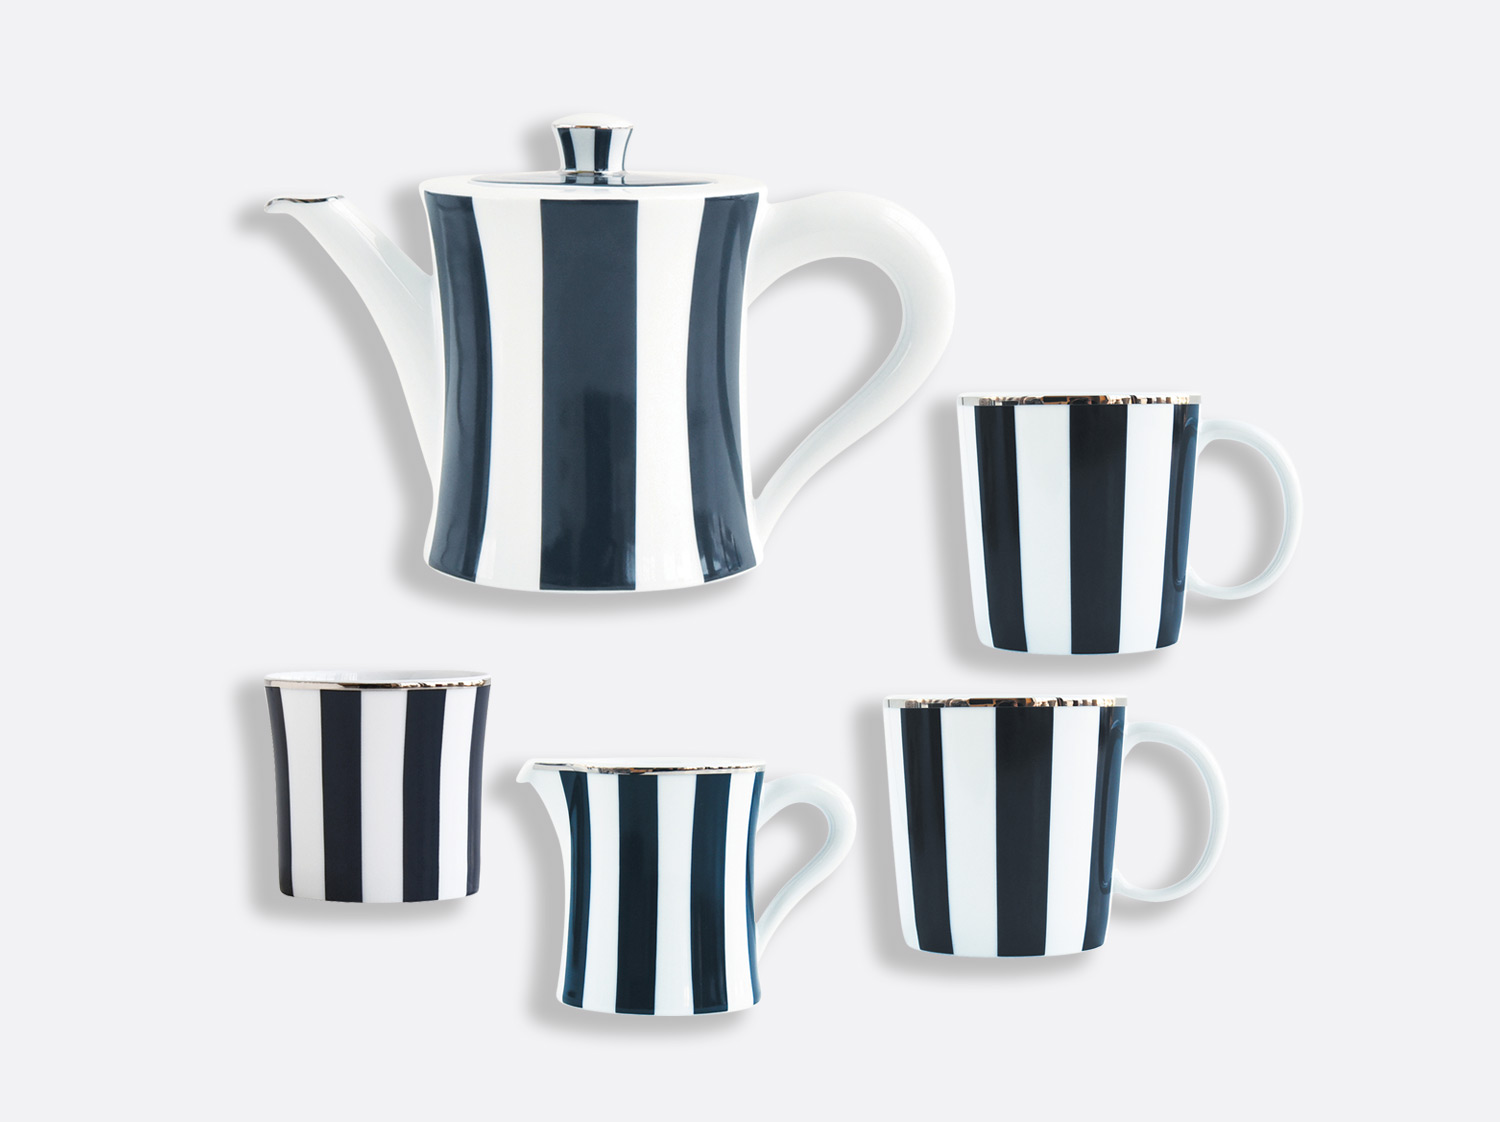 China Set of : 2 mugs, small hot beverage server, creamer, sugar bowl of the collection Galerie Royale Bleu Nuit | Bernardaud